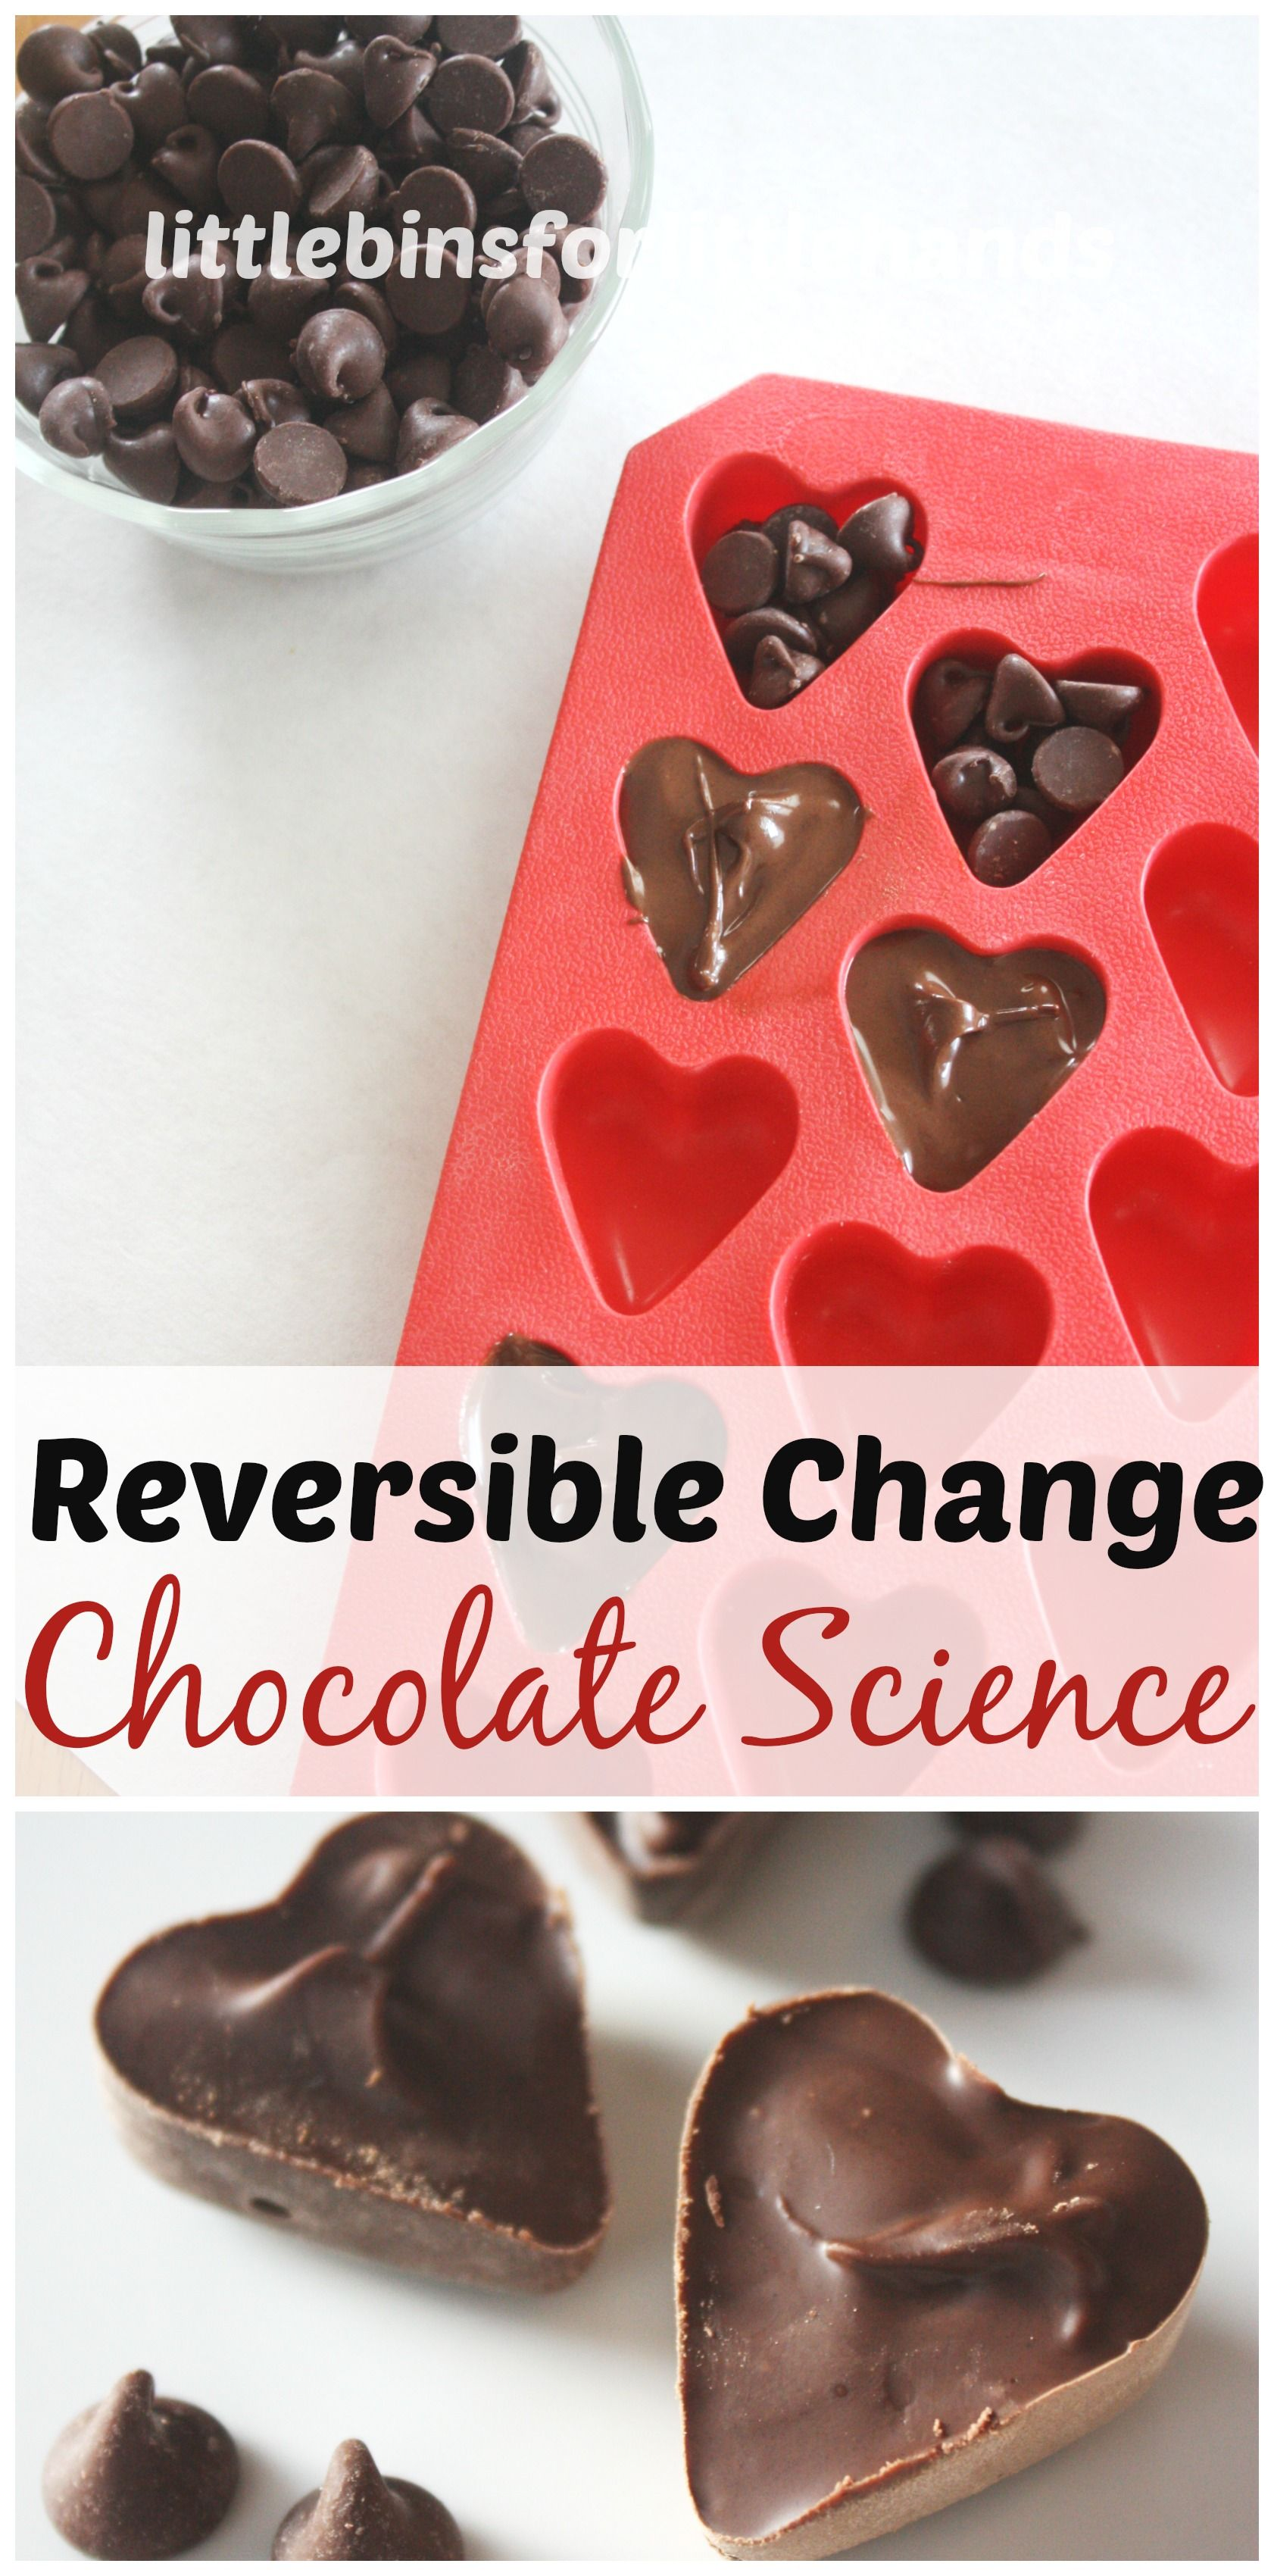 Simple Kitchen Experiments chocolate science activity reversible change food science